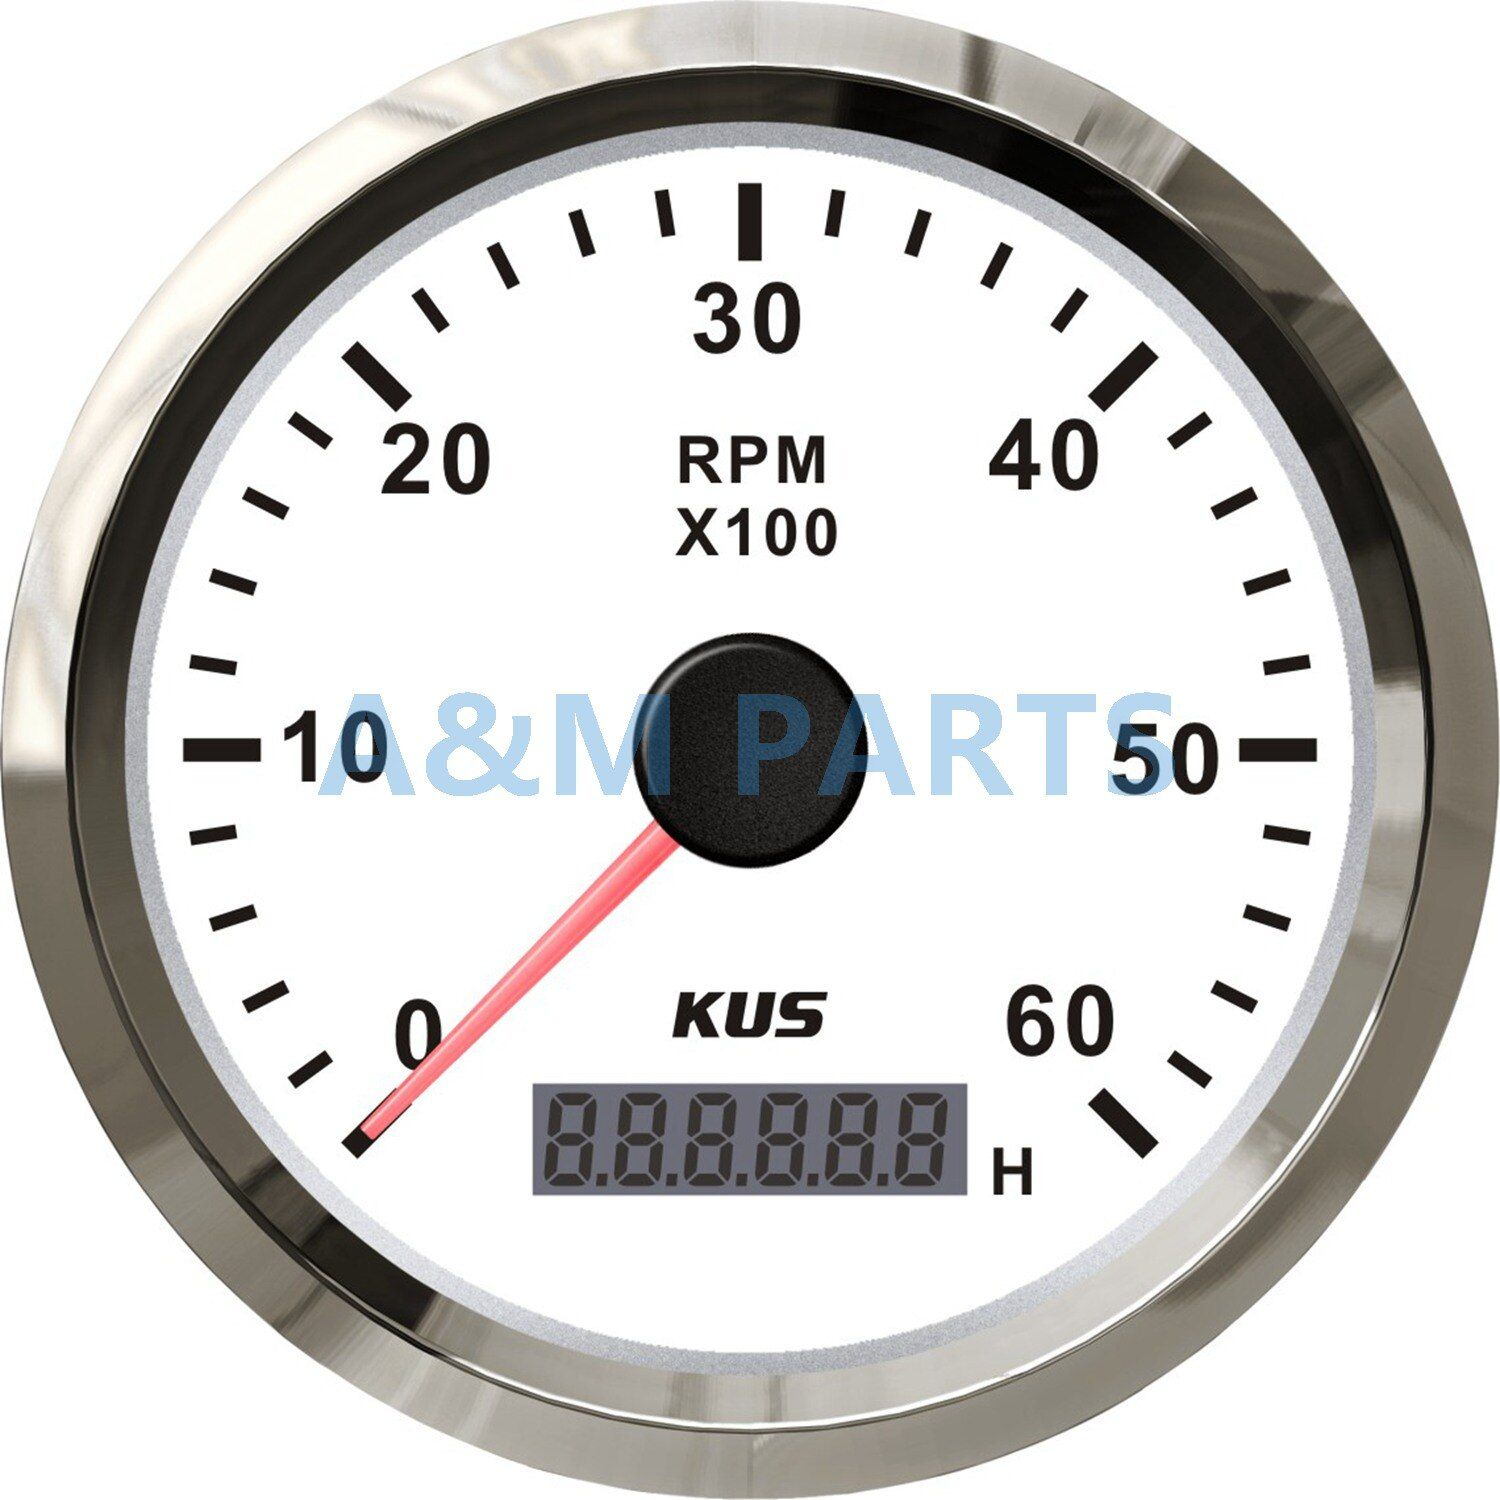 KUS Marine Outboard Tachometer With LED Hourmeter Boat Truck Car RV Waterproof RPM Meter 6000 RPM 85mm Speed Ration 1-10